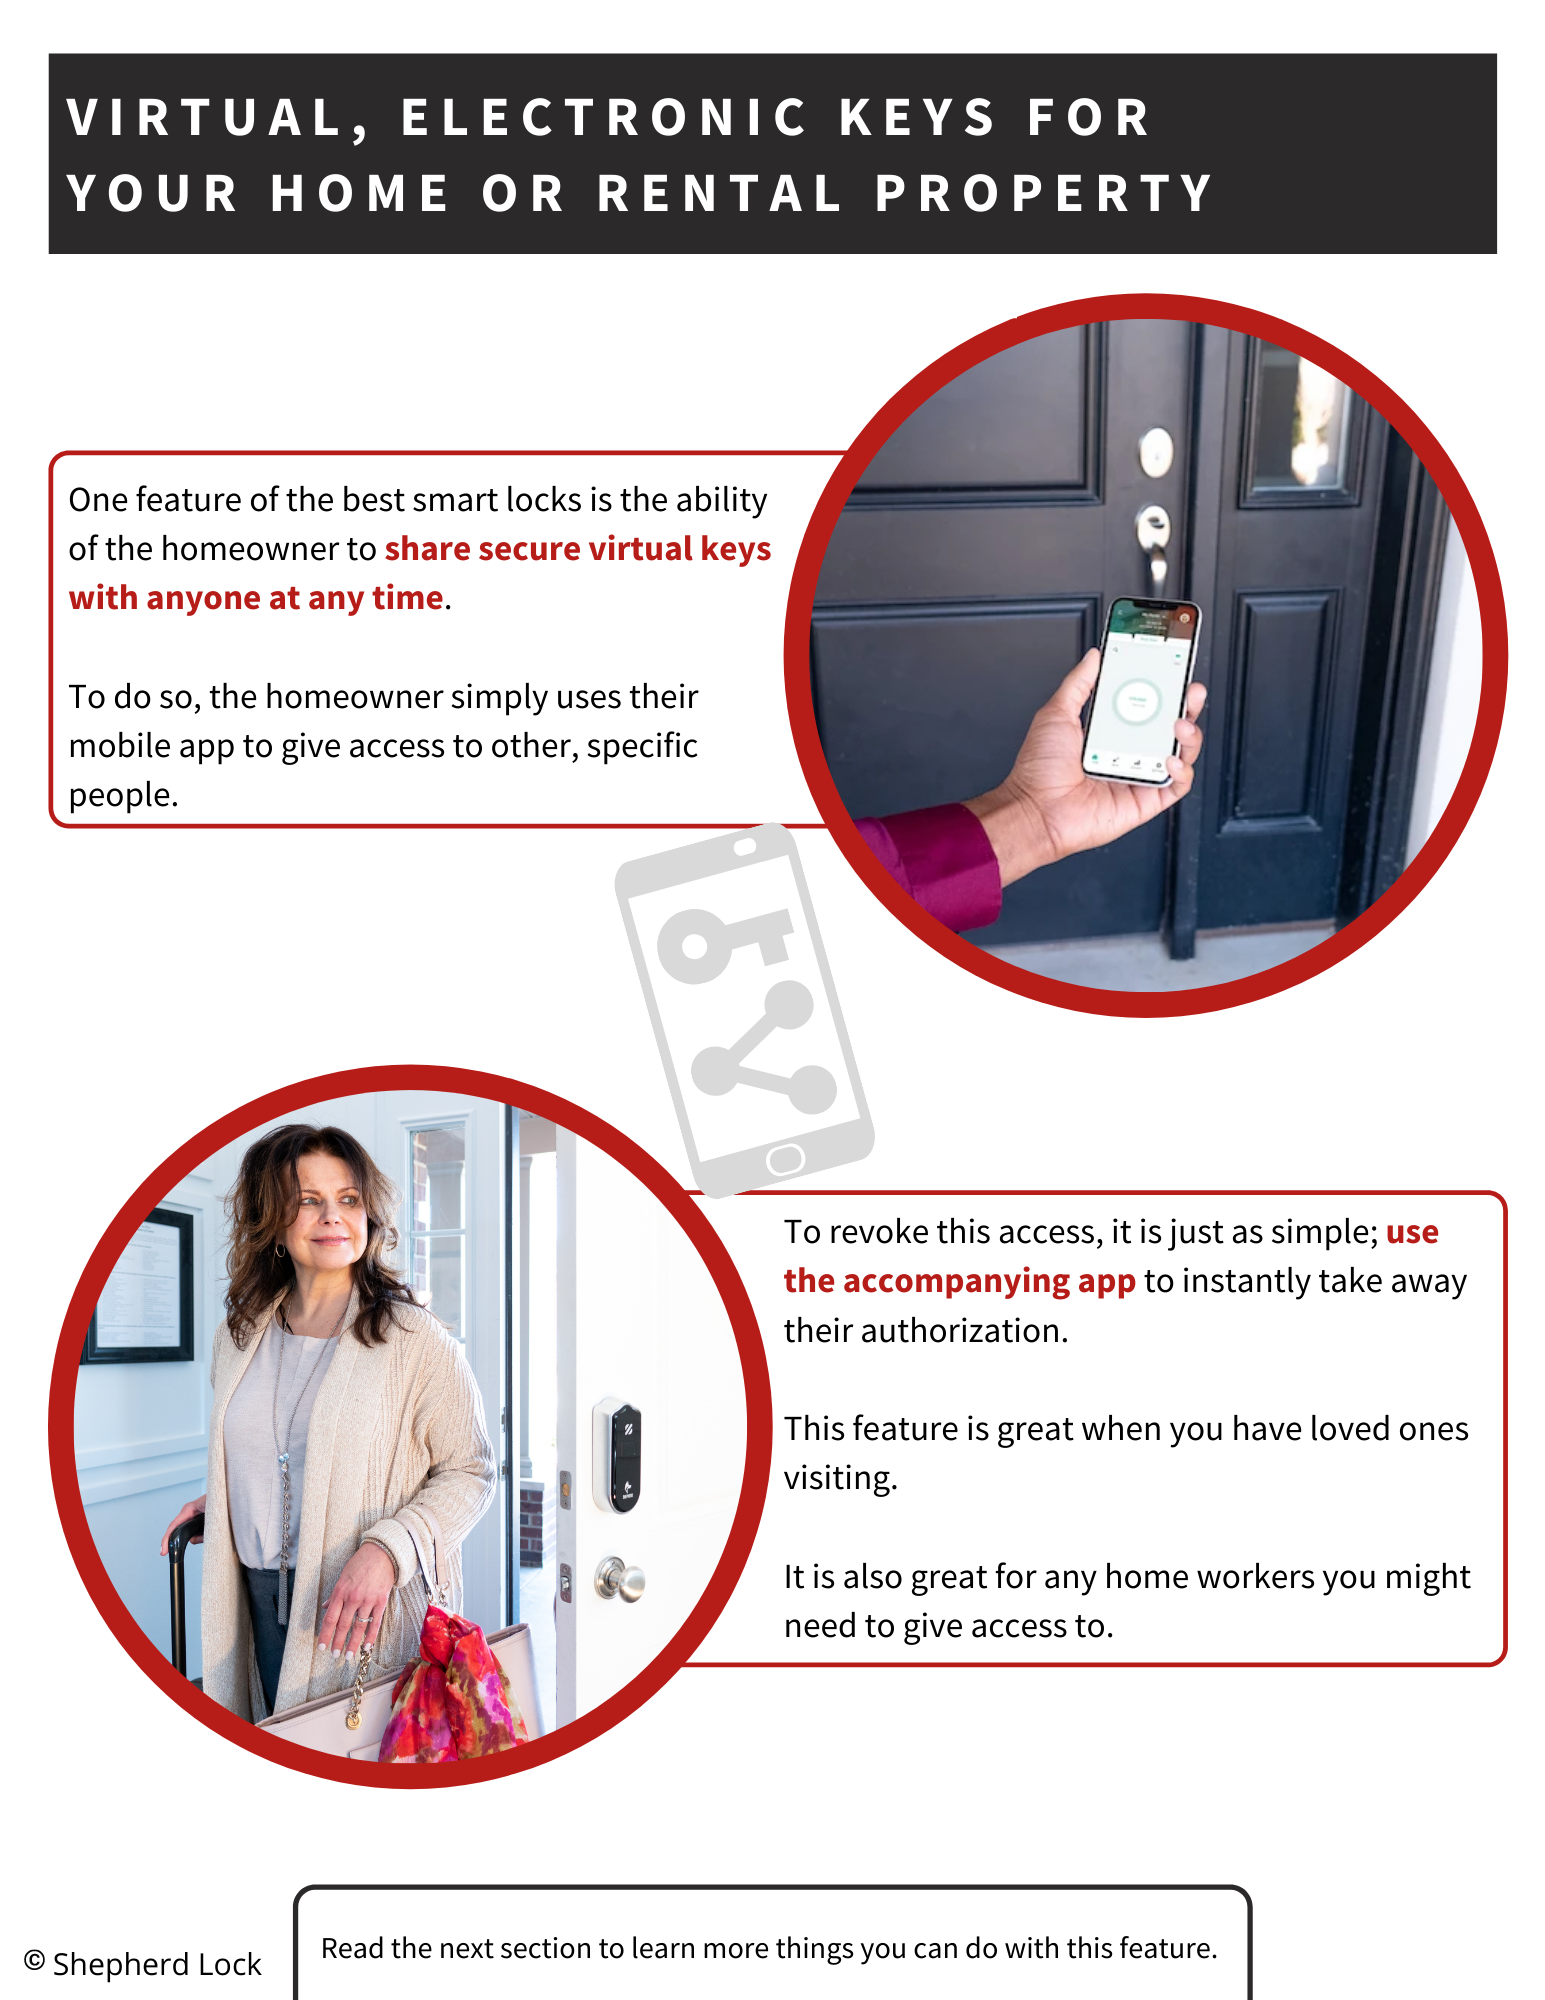 Virtual, Electronic Keys for Your Home or rental property. One feature of the best smart locks is the ability of the homeowner to share secure virtual keys with anyone at any time.   To do so, the homeowner simply uses their mobile app to give access to other, specific people. To revoke this access, it is just as simple; use the accompanying app to instantly take away their authorization.   This feature is great when you have loved ones visiting.   It is also great for any home workers you might need to give access to.